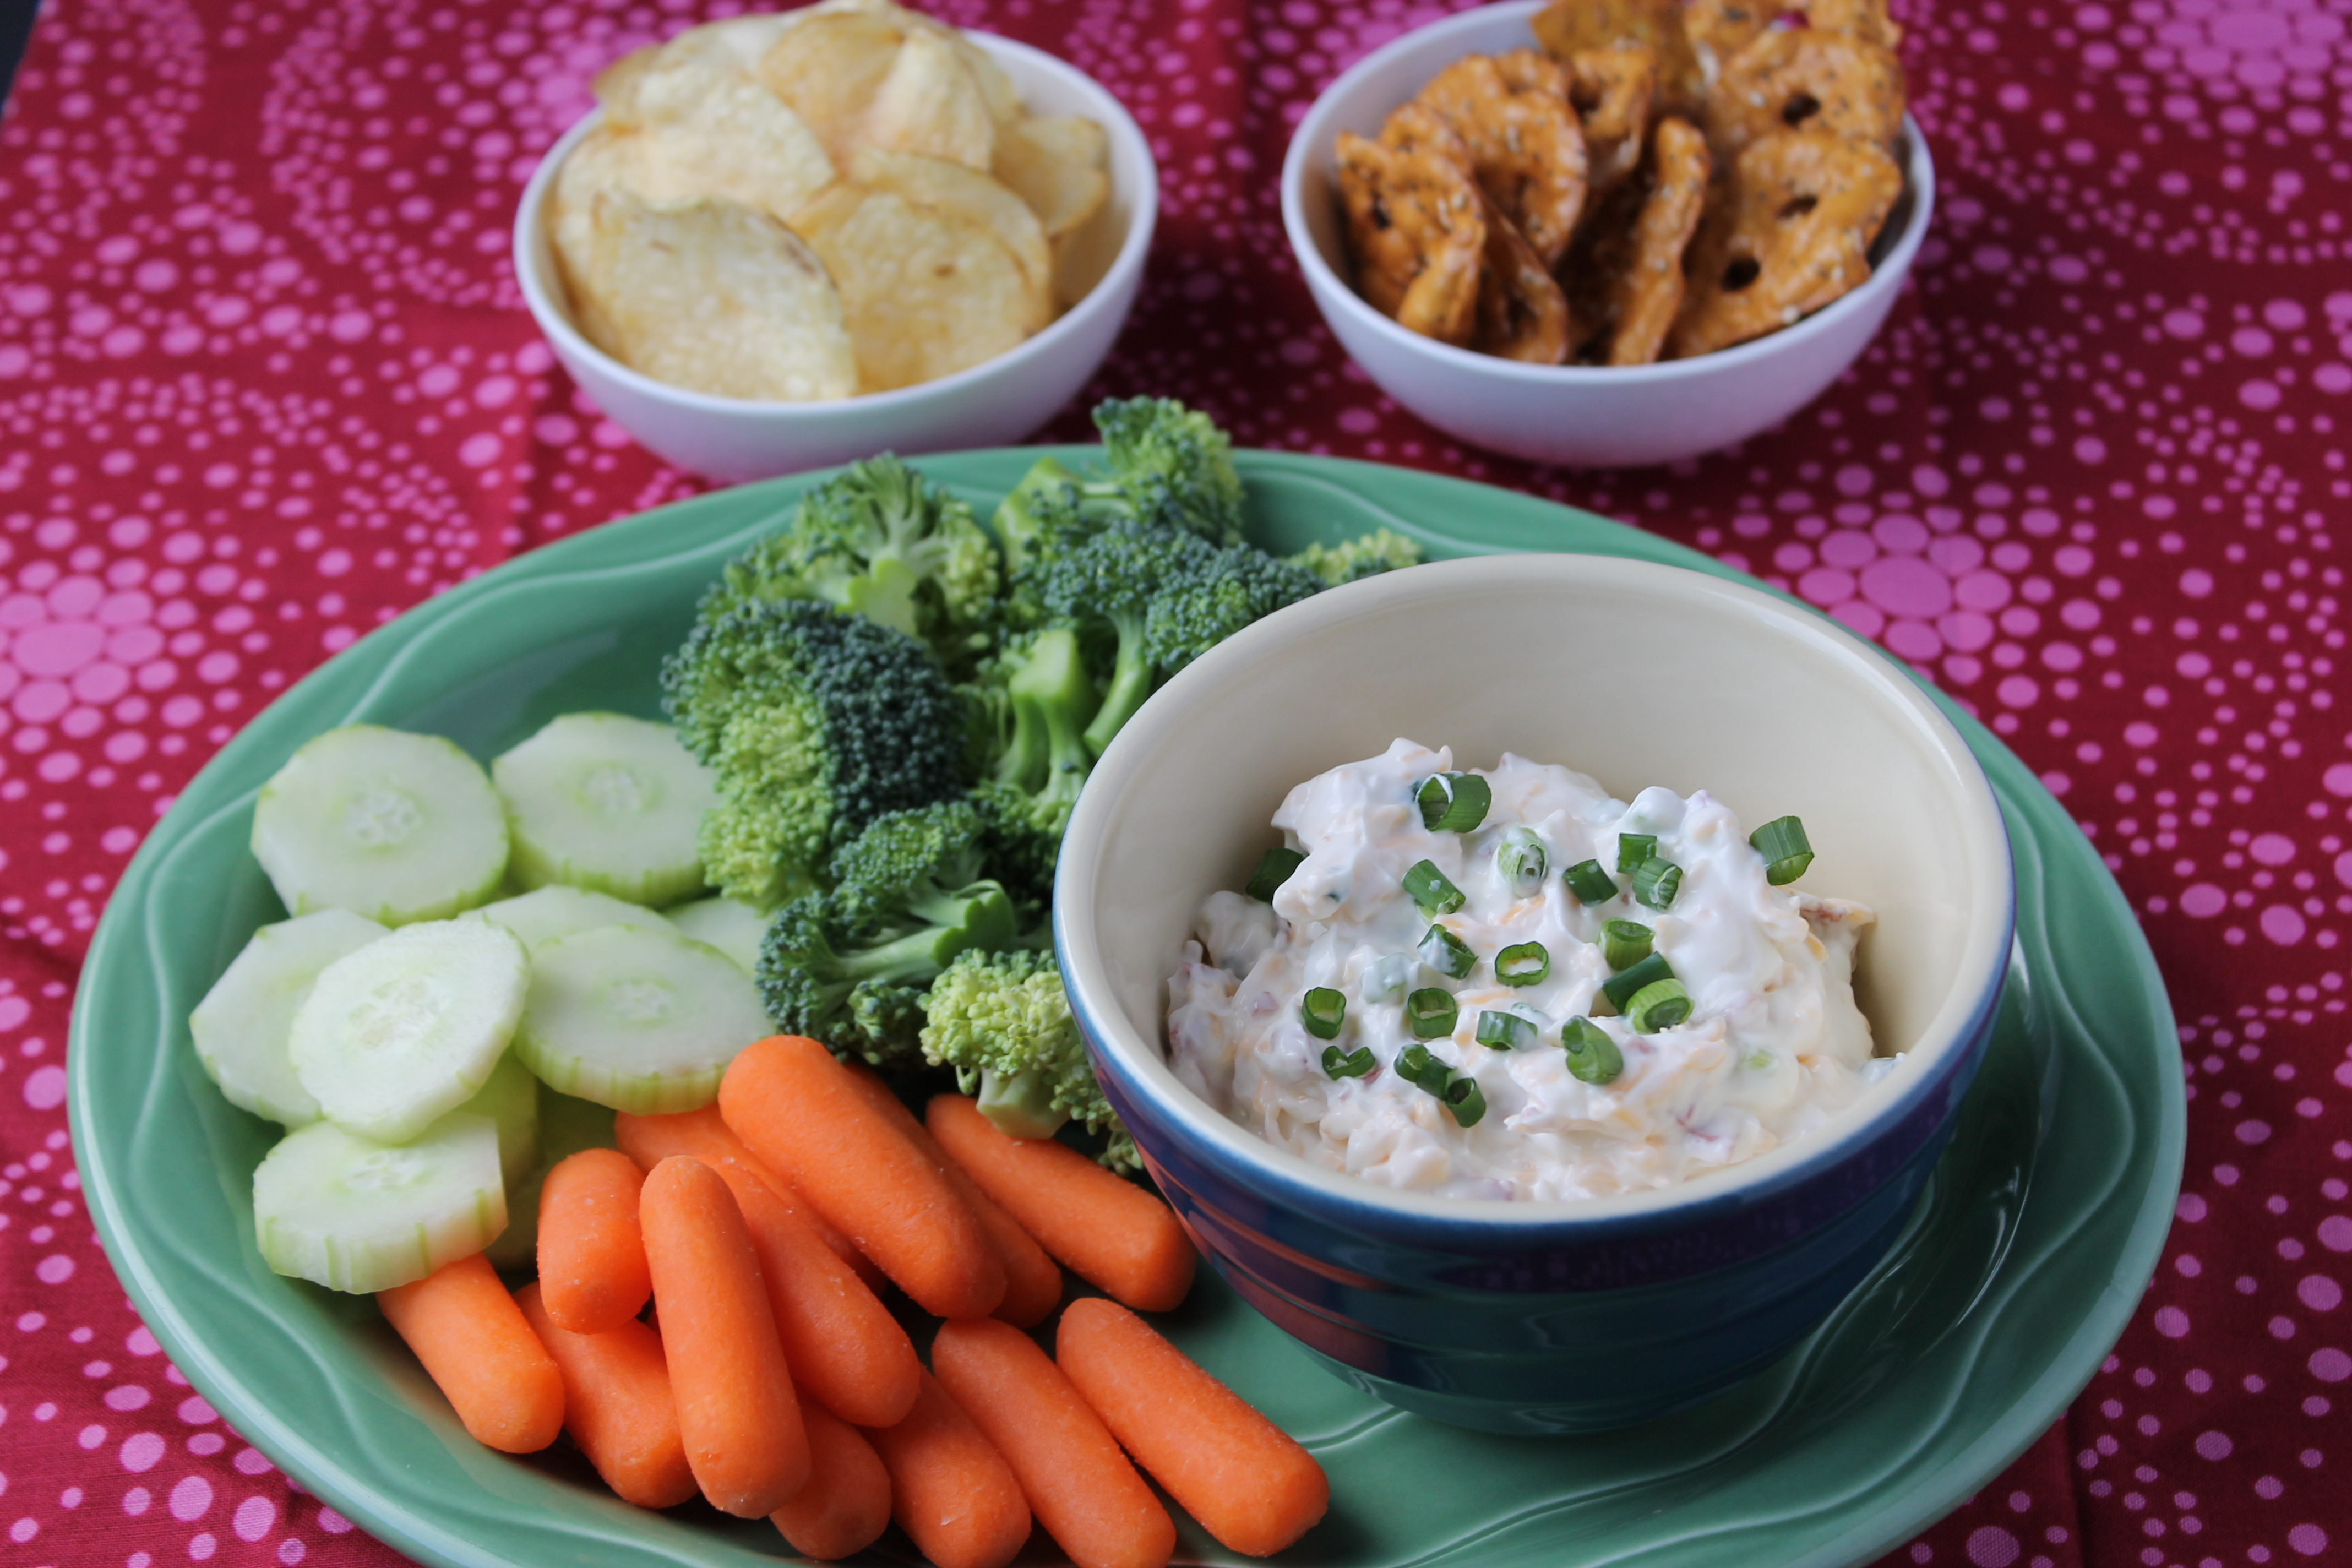 Baked Potato Dip with veggies, chips, and pretzels